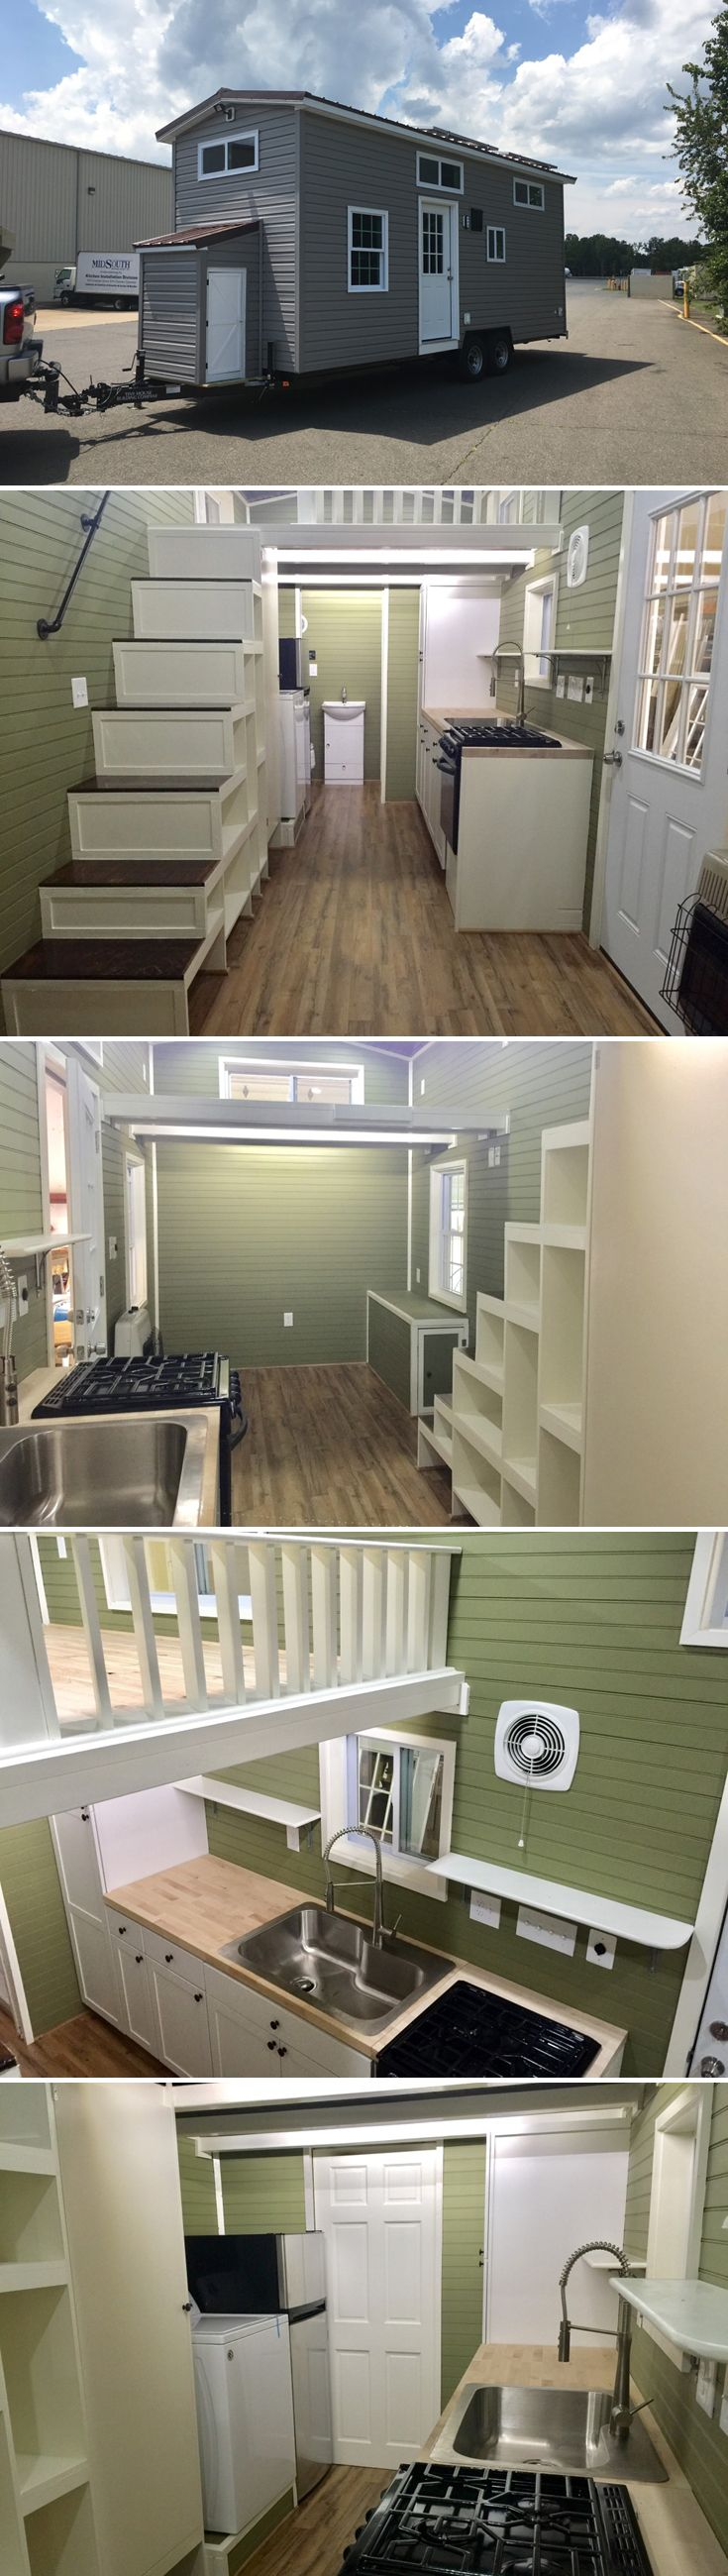 The Willow is a 24-foot custom off-grid tiny house with solar power, a 46 gallon fresh water holding tank, and composting toilet.